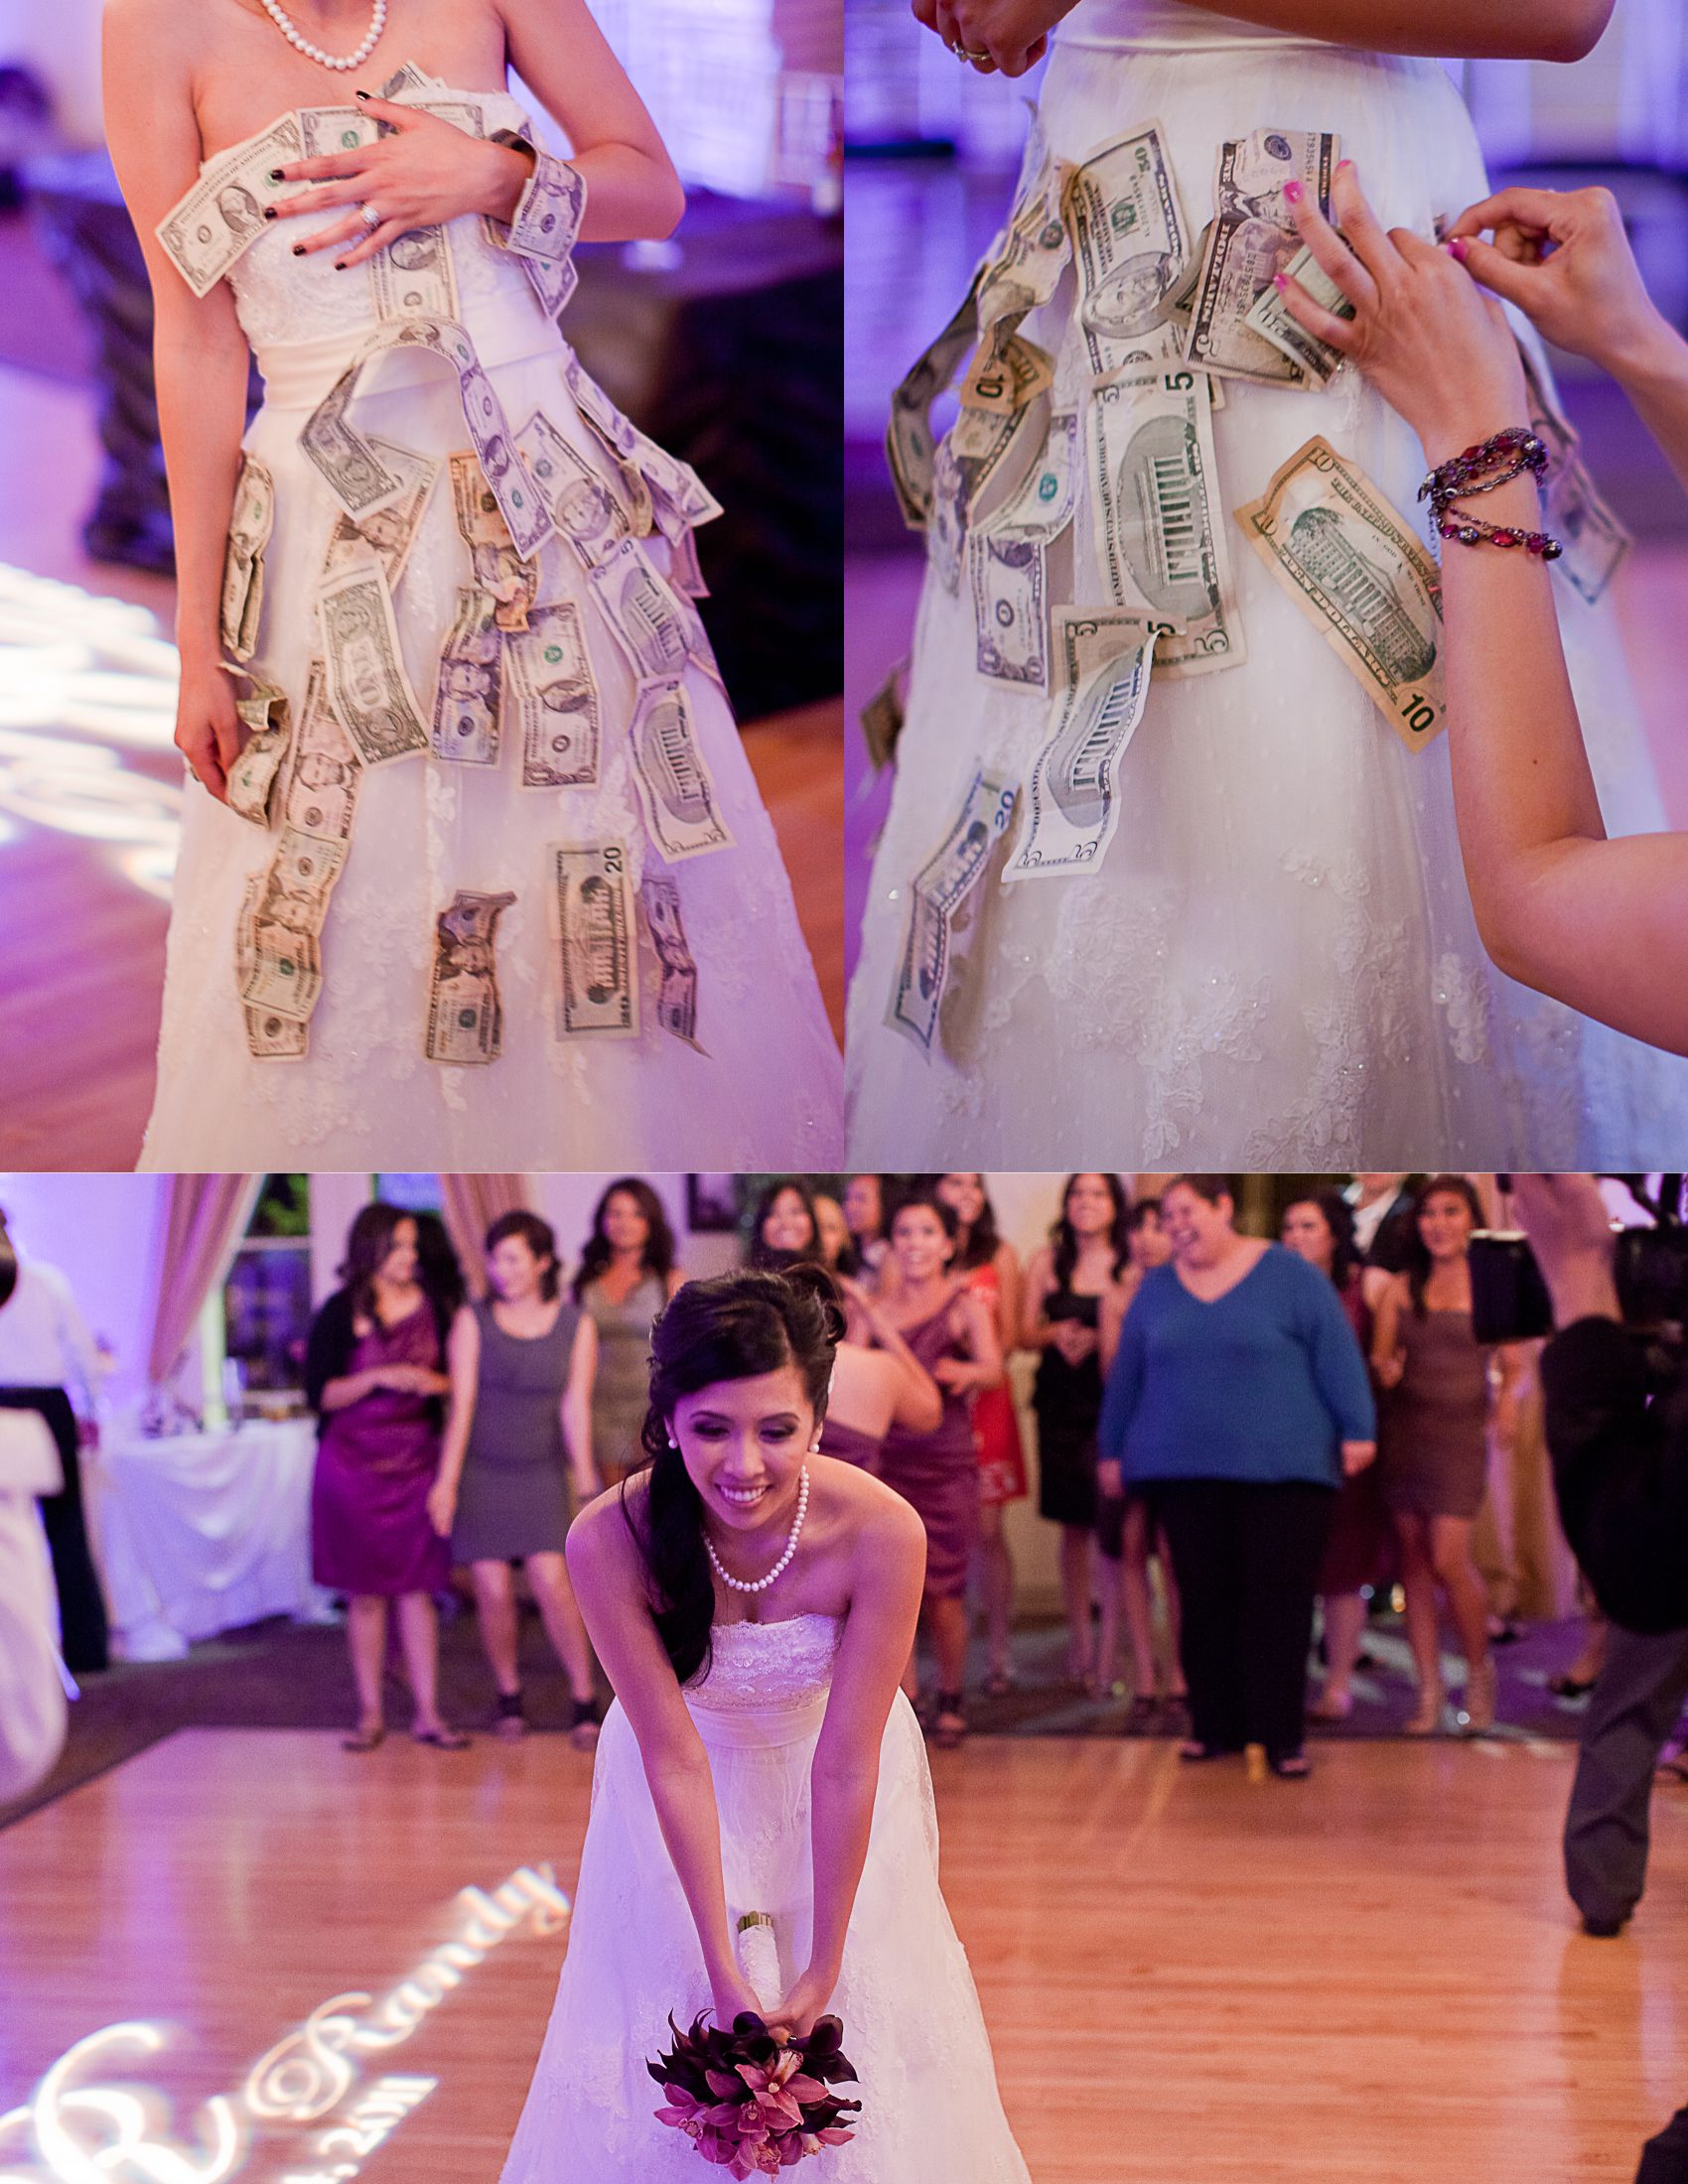 Definitely happening at our wedding its a little mexican tradition money dance a filipino wedding tradition buycottarizona Images